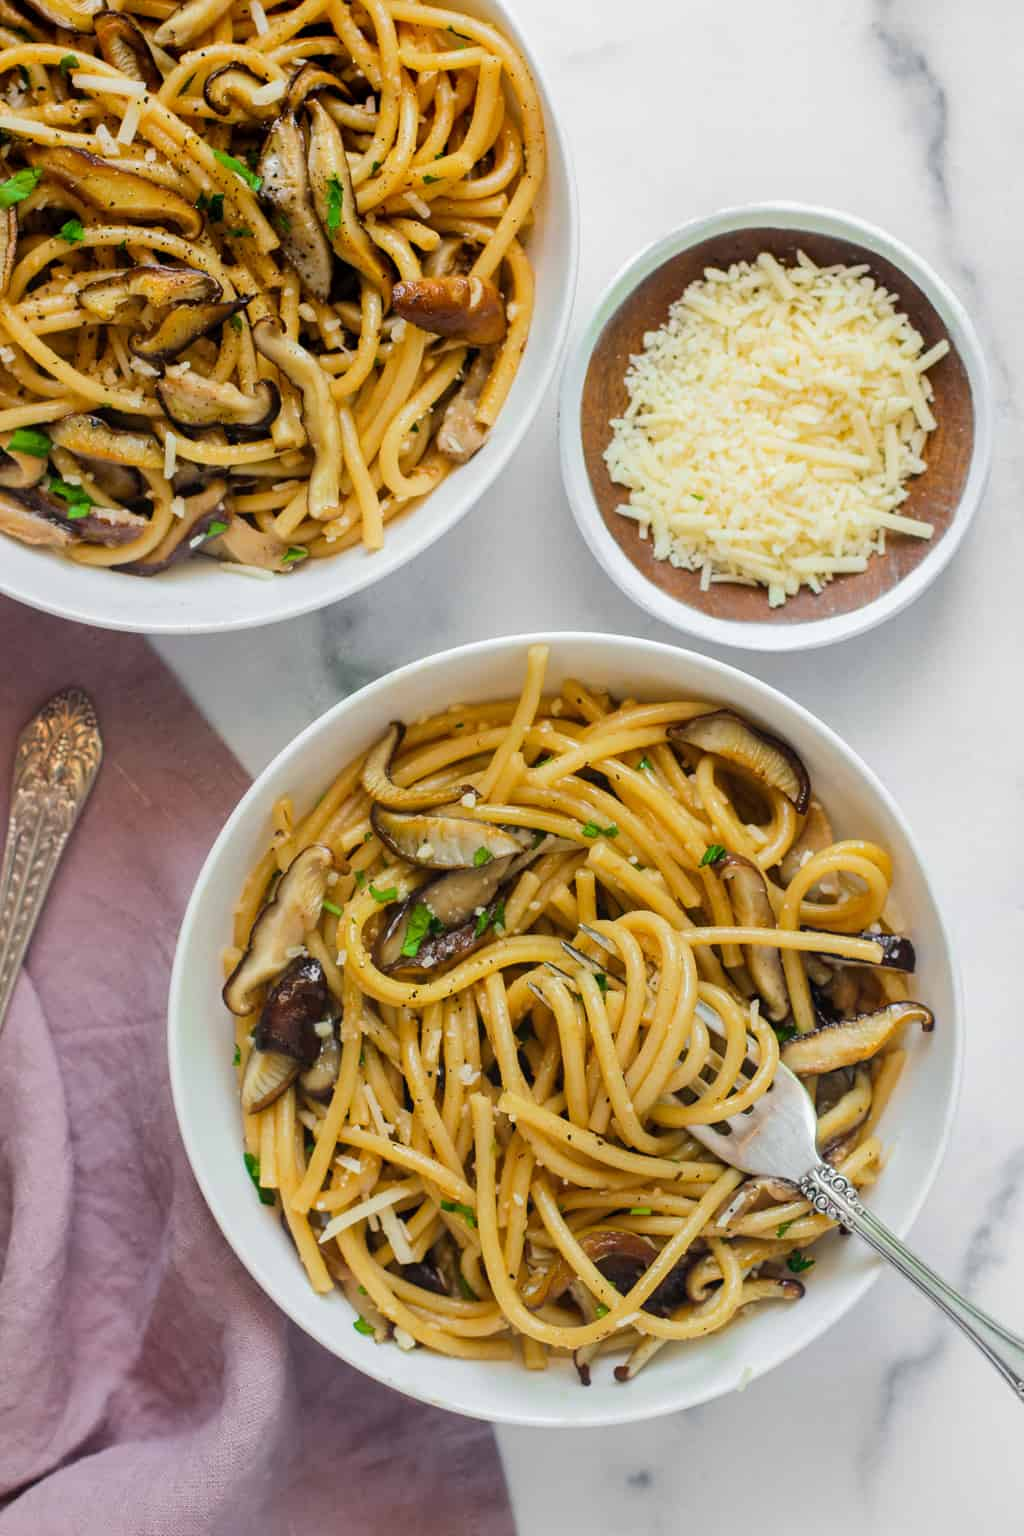 spaghetti with shiitake mushrooms